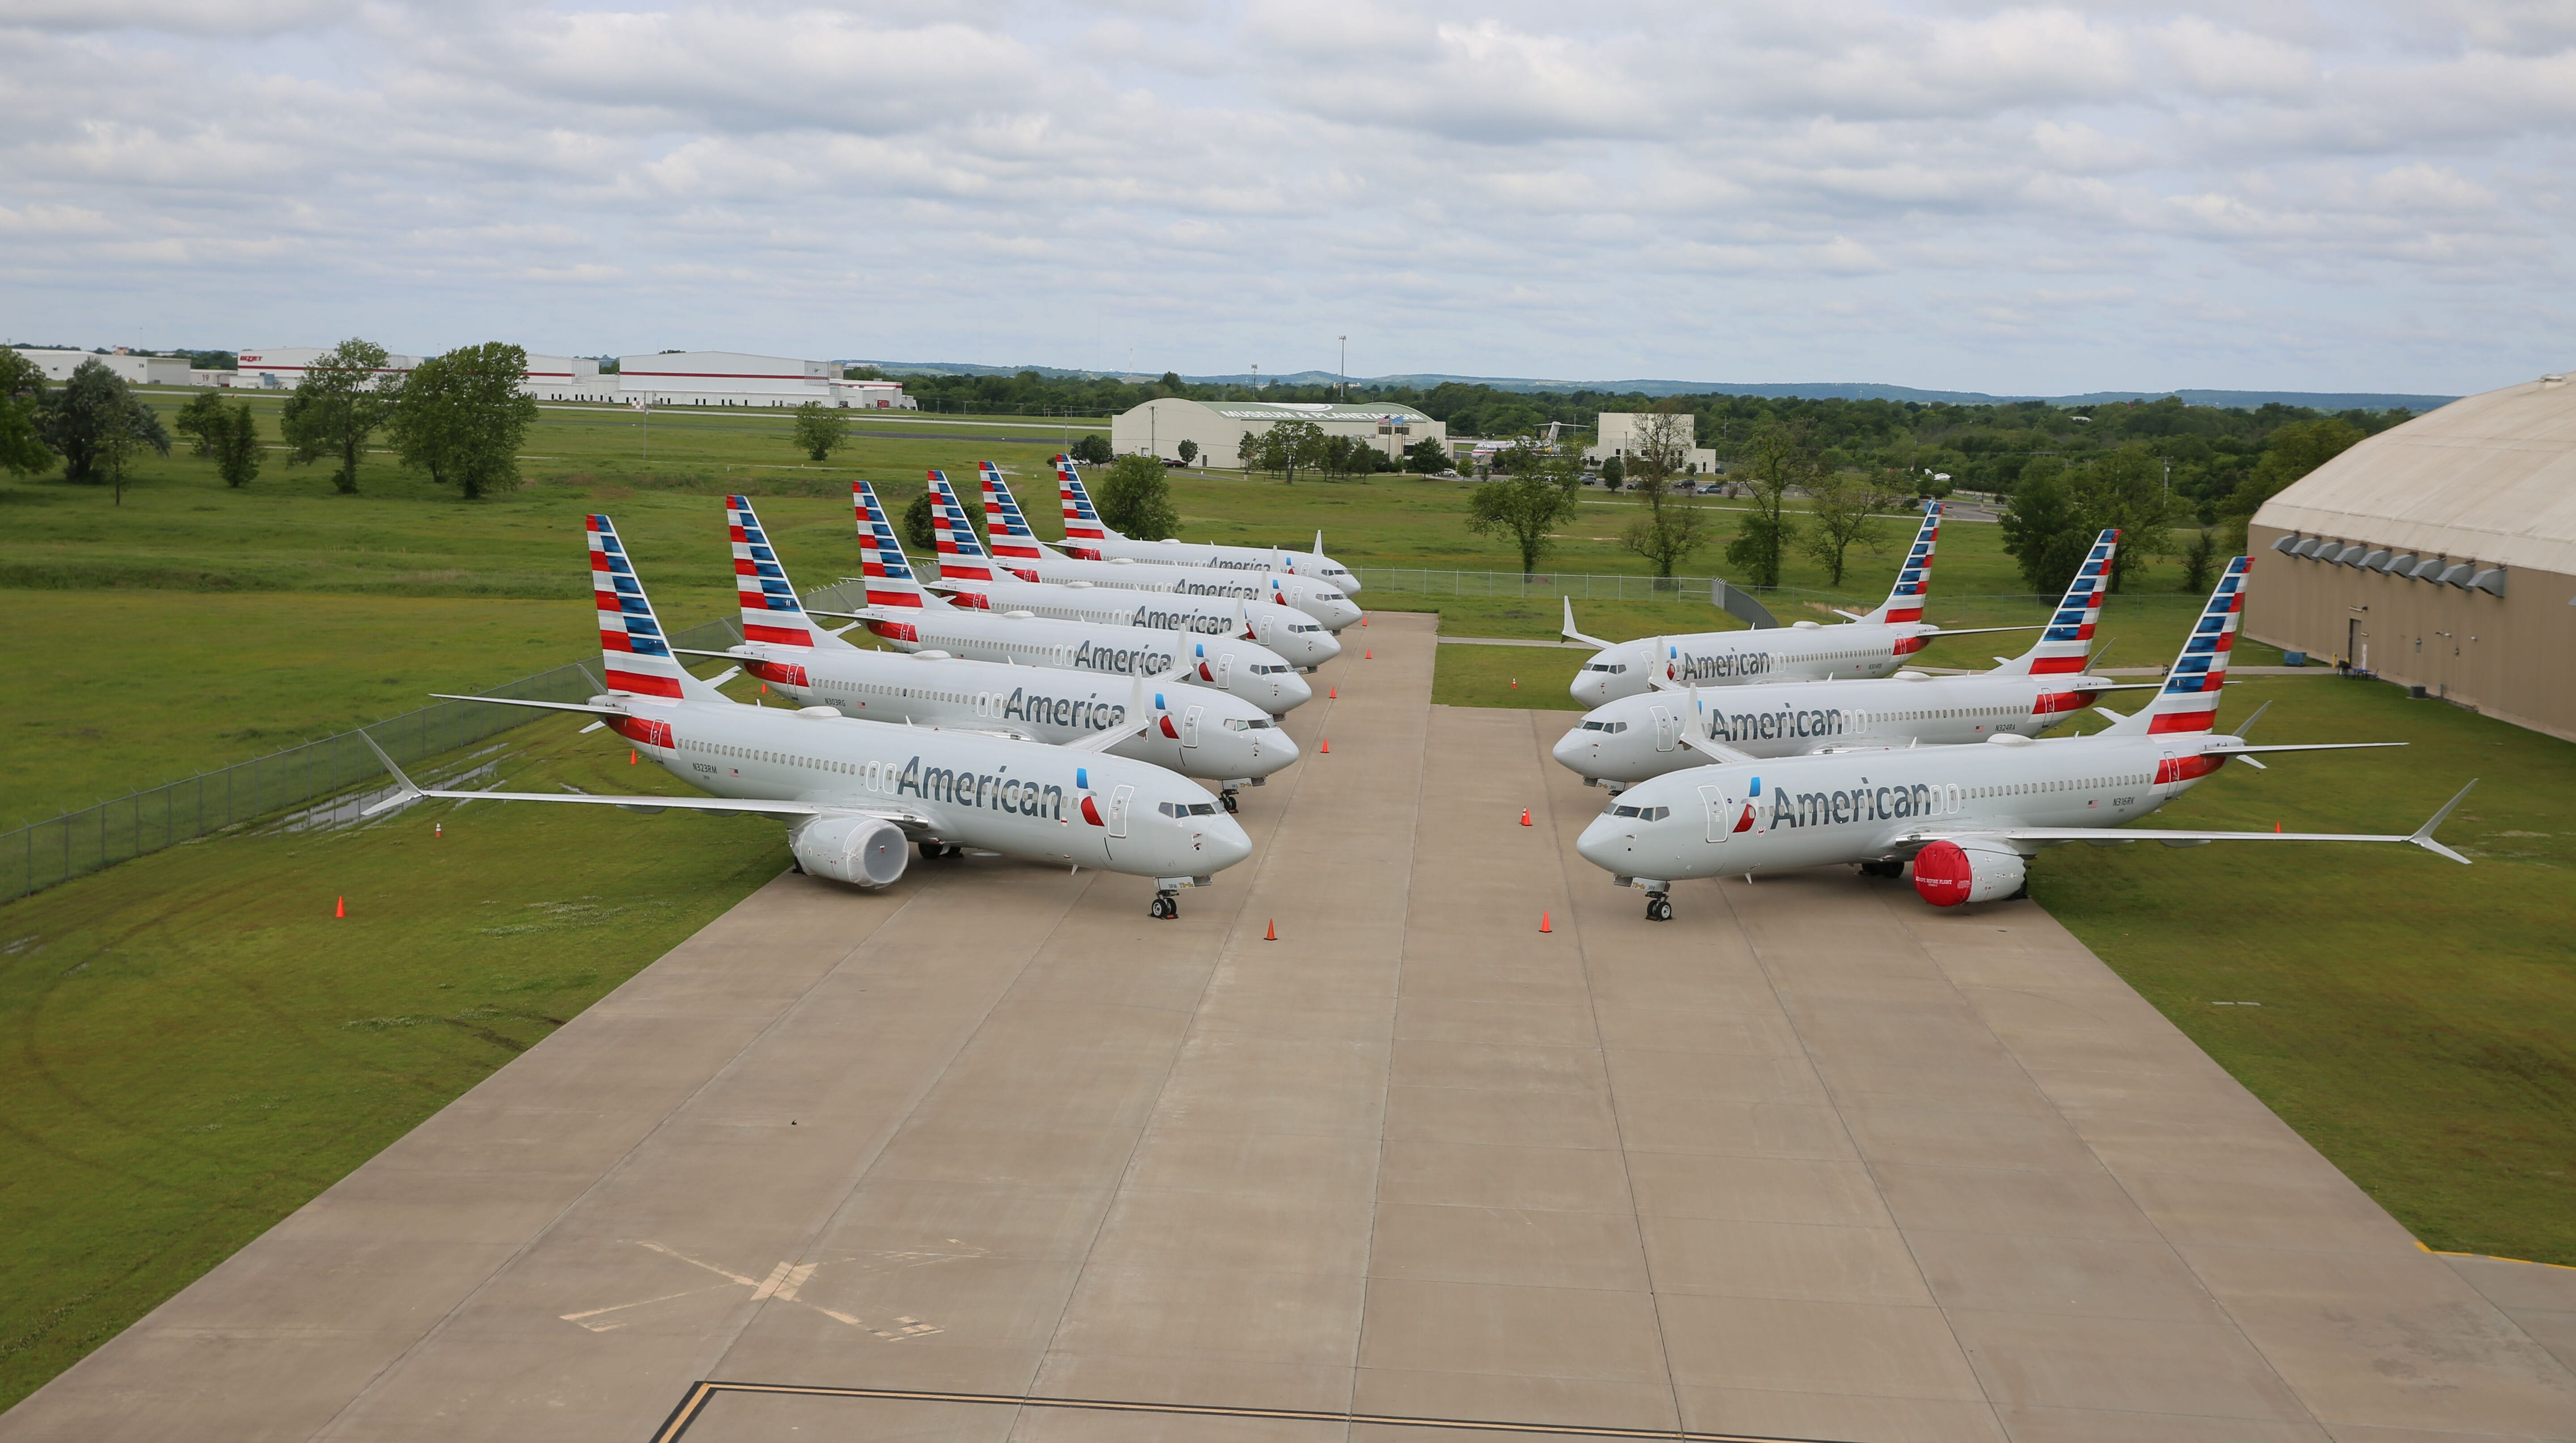 American Airlines Boeing 737 Max 8 planes parked at the airline's maintenance base in Tulsa, Oklahoma